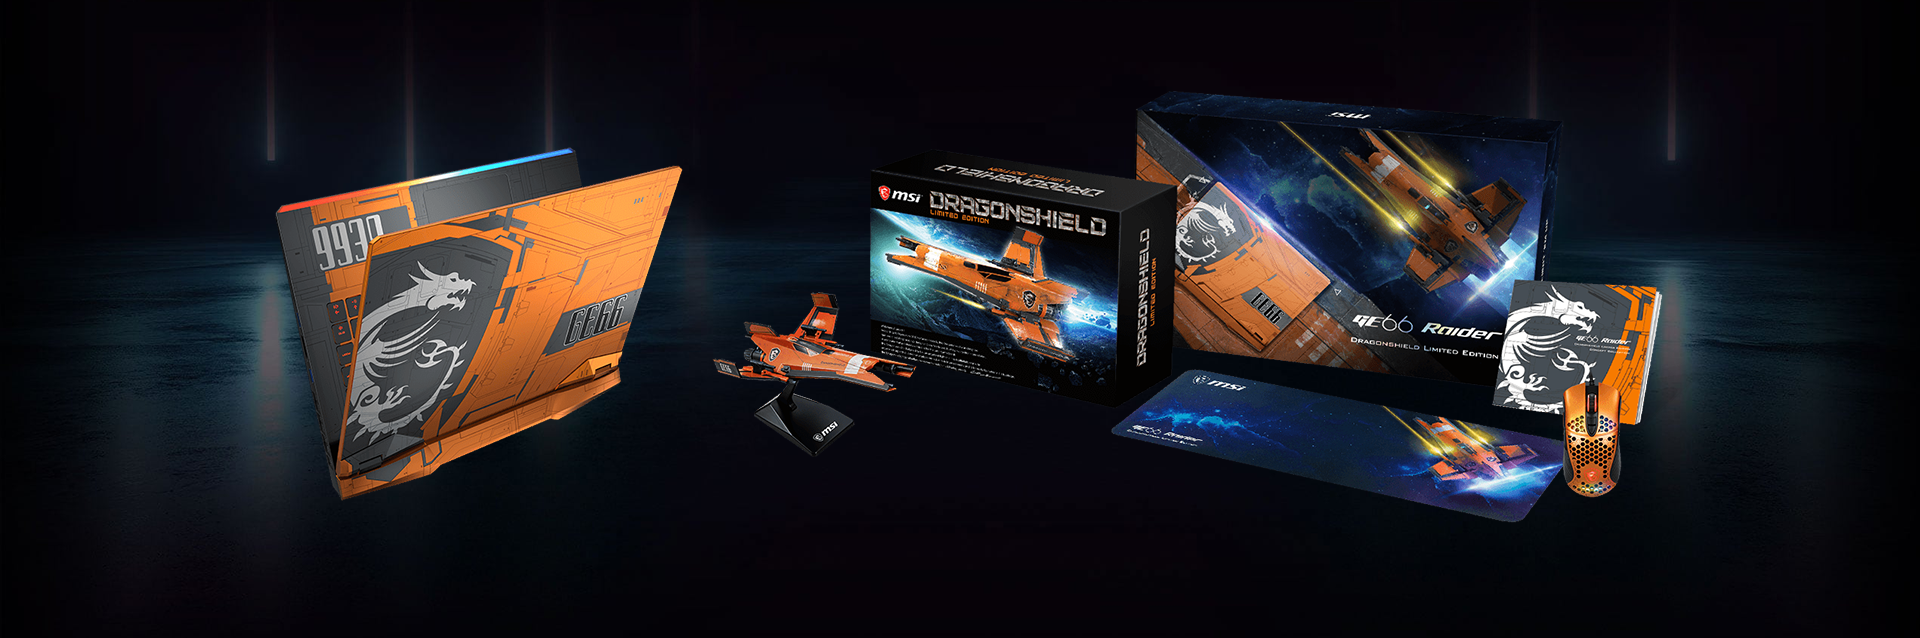 Complete your gaming room setup with the limited edition gaming mouse, mousepad, and Dragonshield spaceship model. Own the Dragonshield Limited editiation and pilot to the ends of the galaxy.